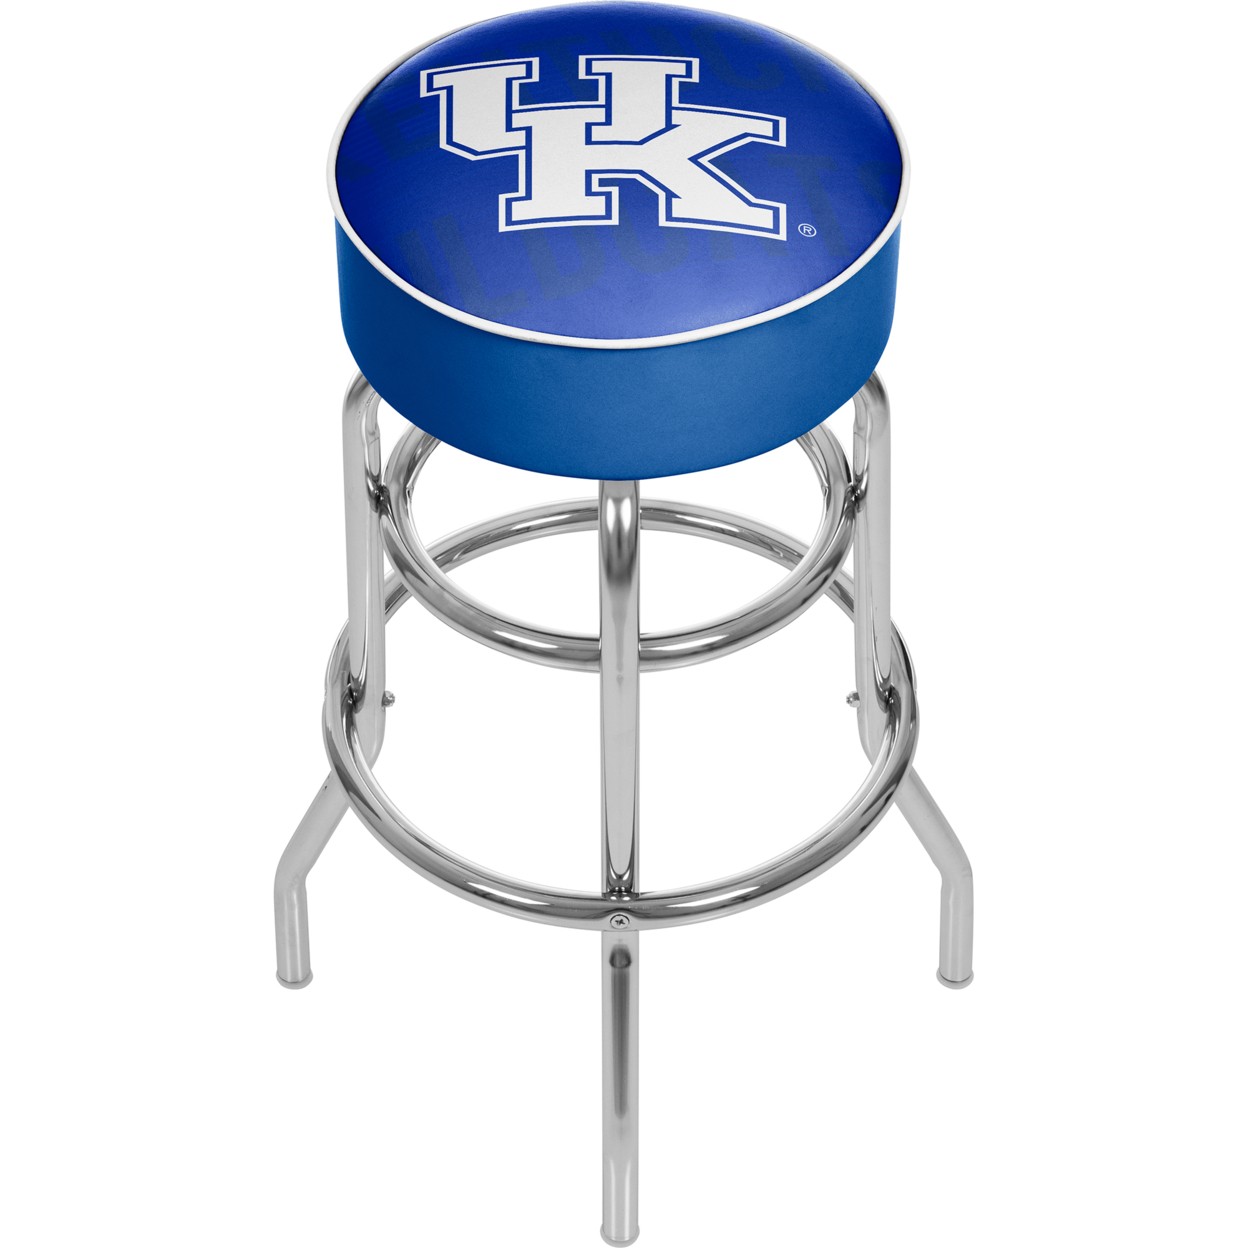 University of Kentucky Wordmark Padded Swivel Bar Stool 30 Inches High